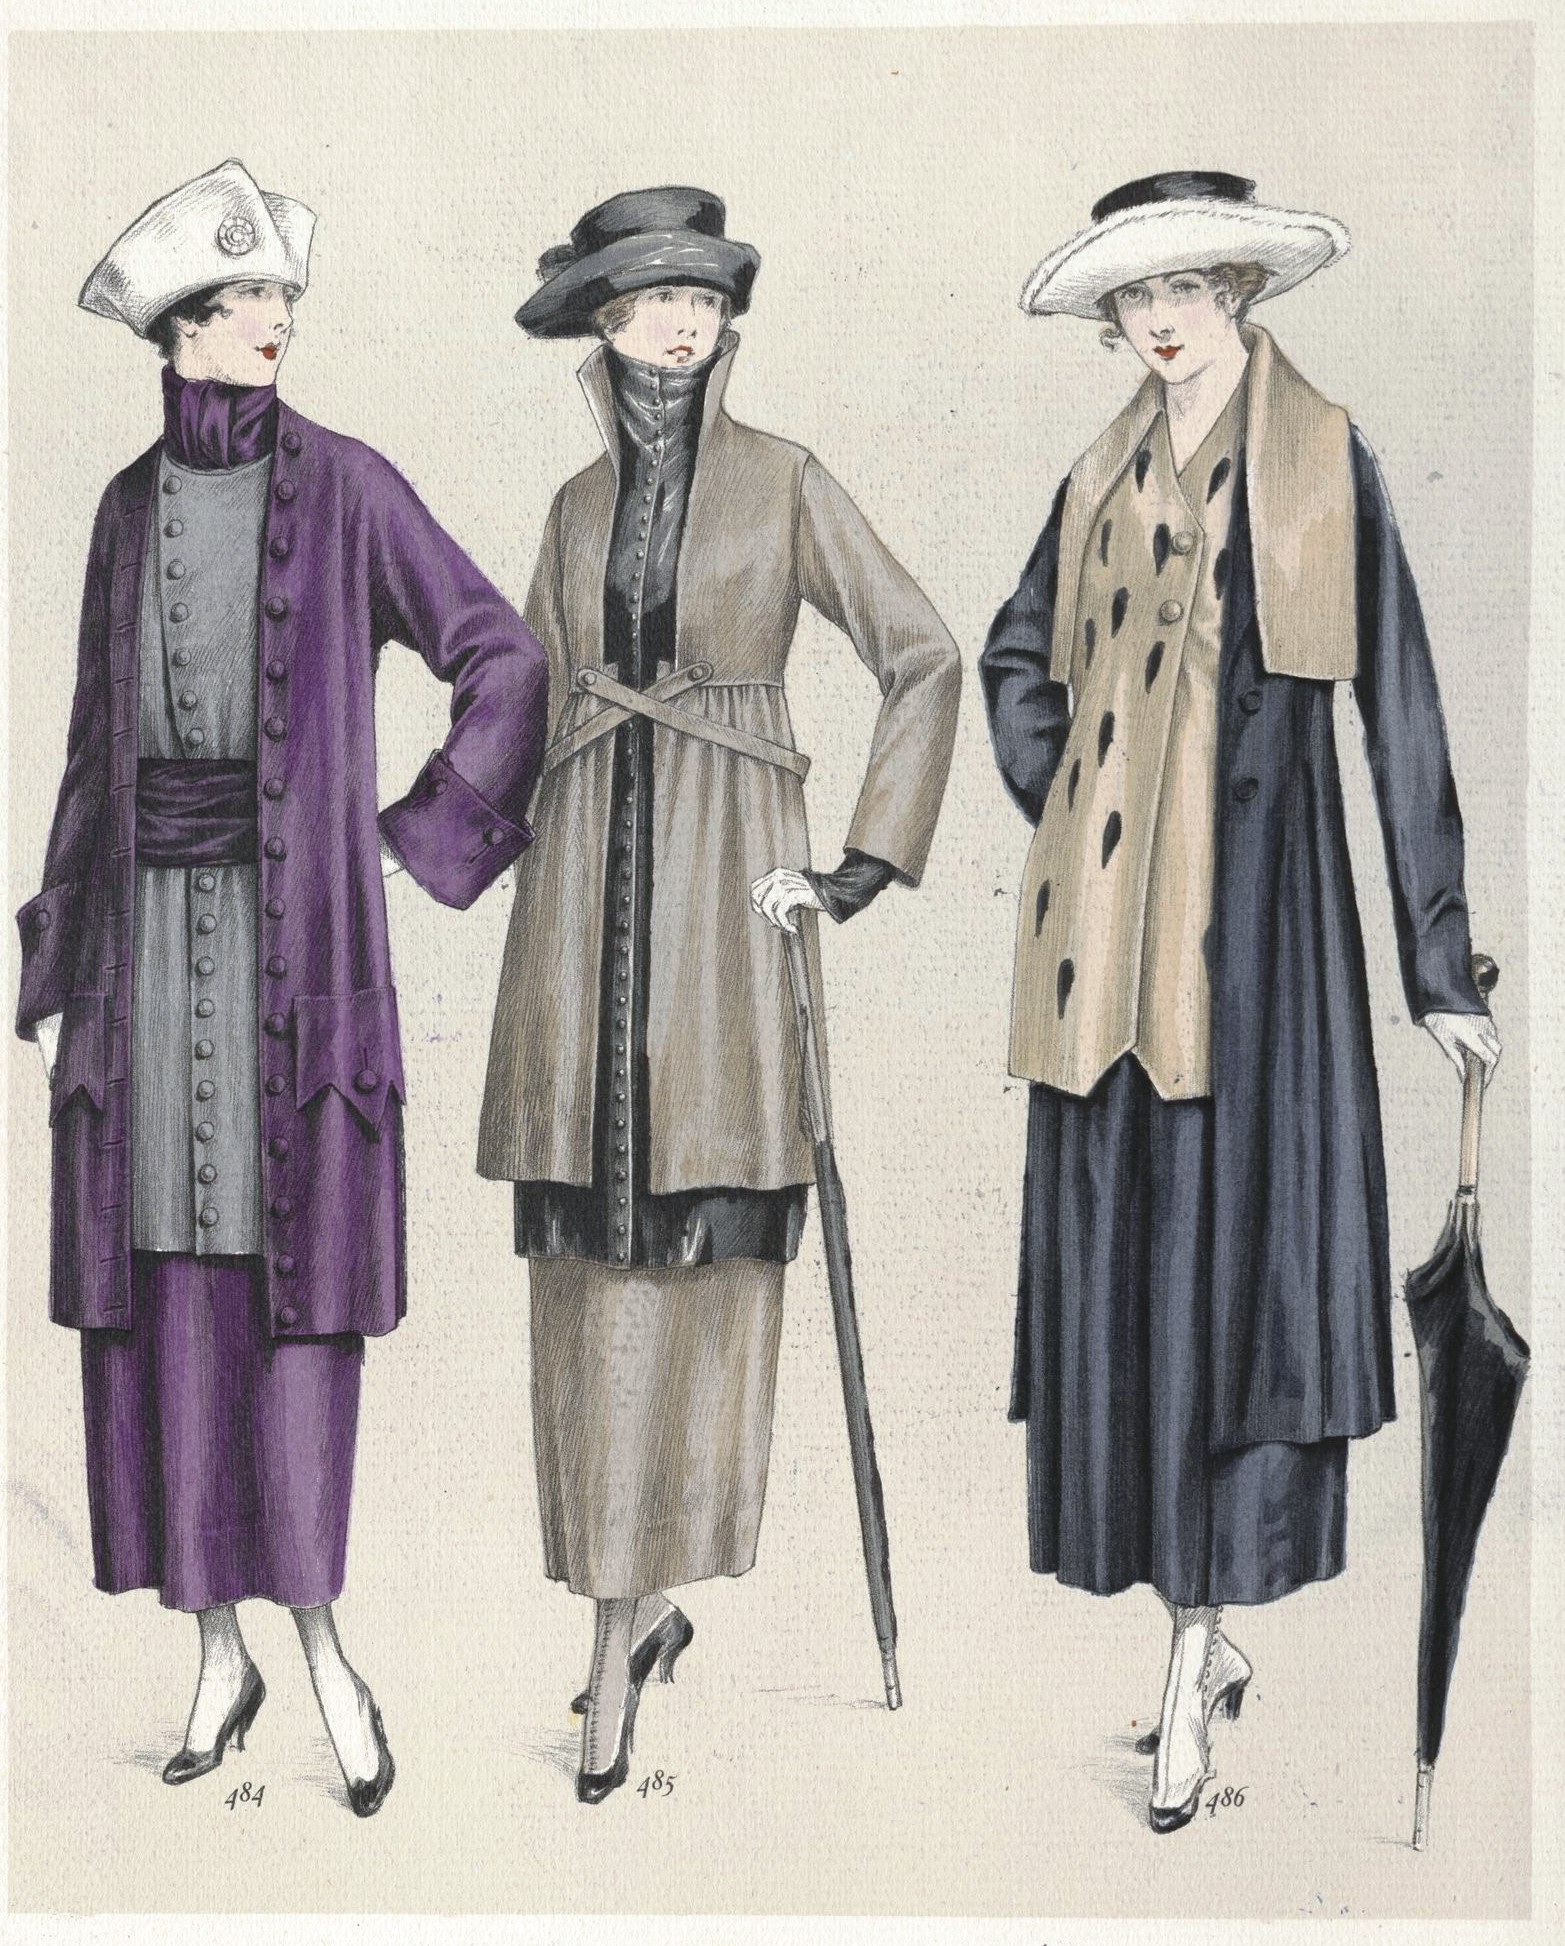 Tailored ensembles - the one on the right by Jenny - showing eighteenth century influences